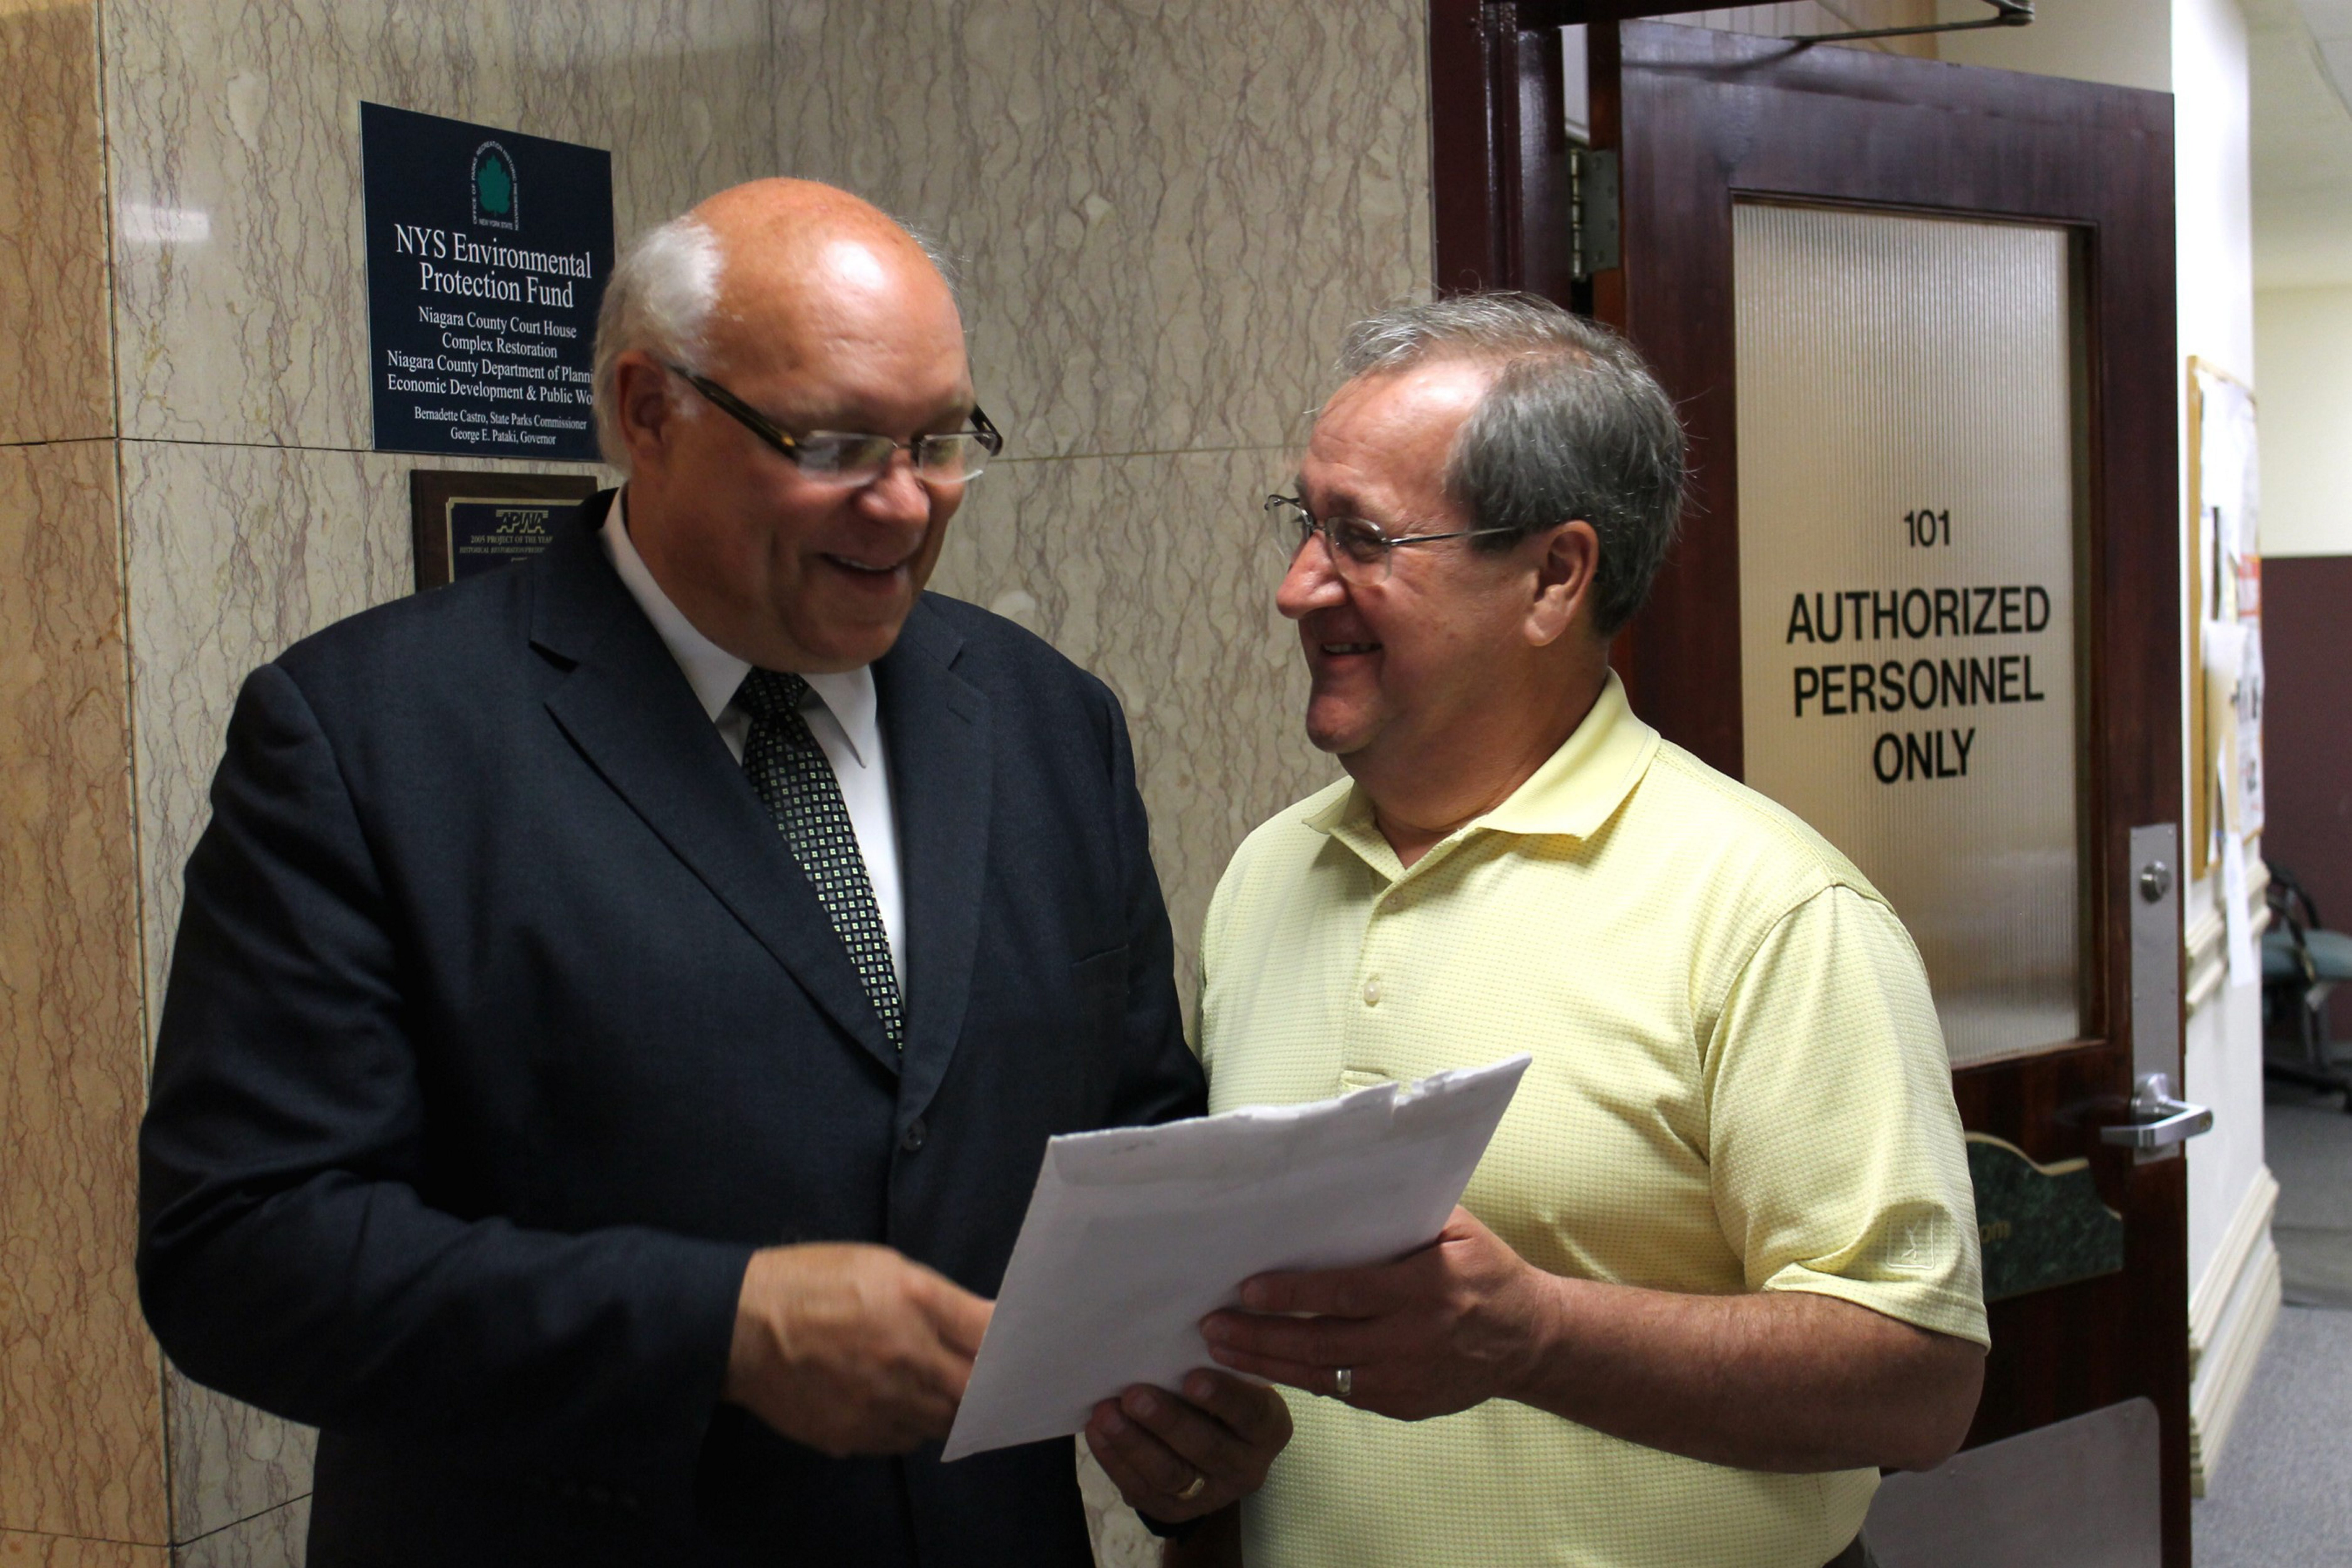 Niagara County Coroners Michael A. Ross, left, and Kenneth V. Lederhouse in a file photo from May 22, 2013.